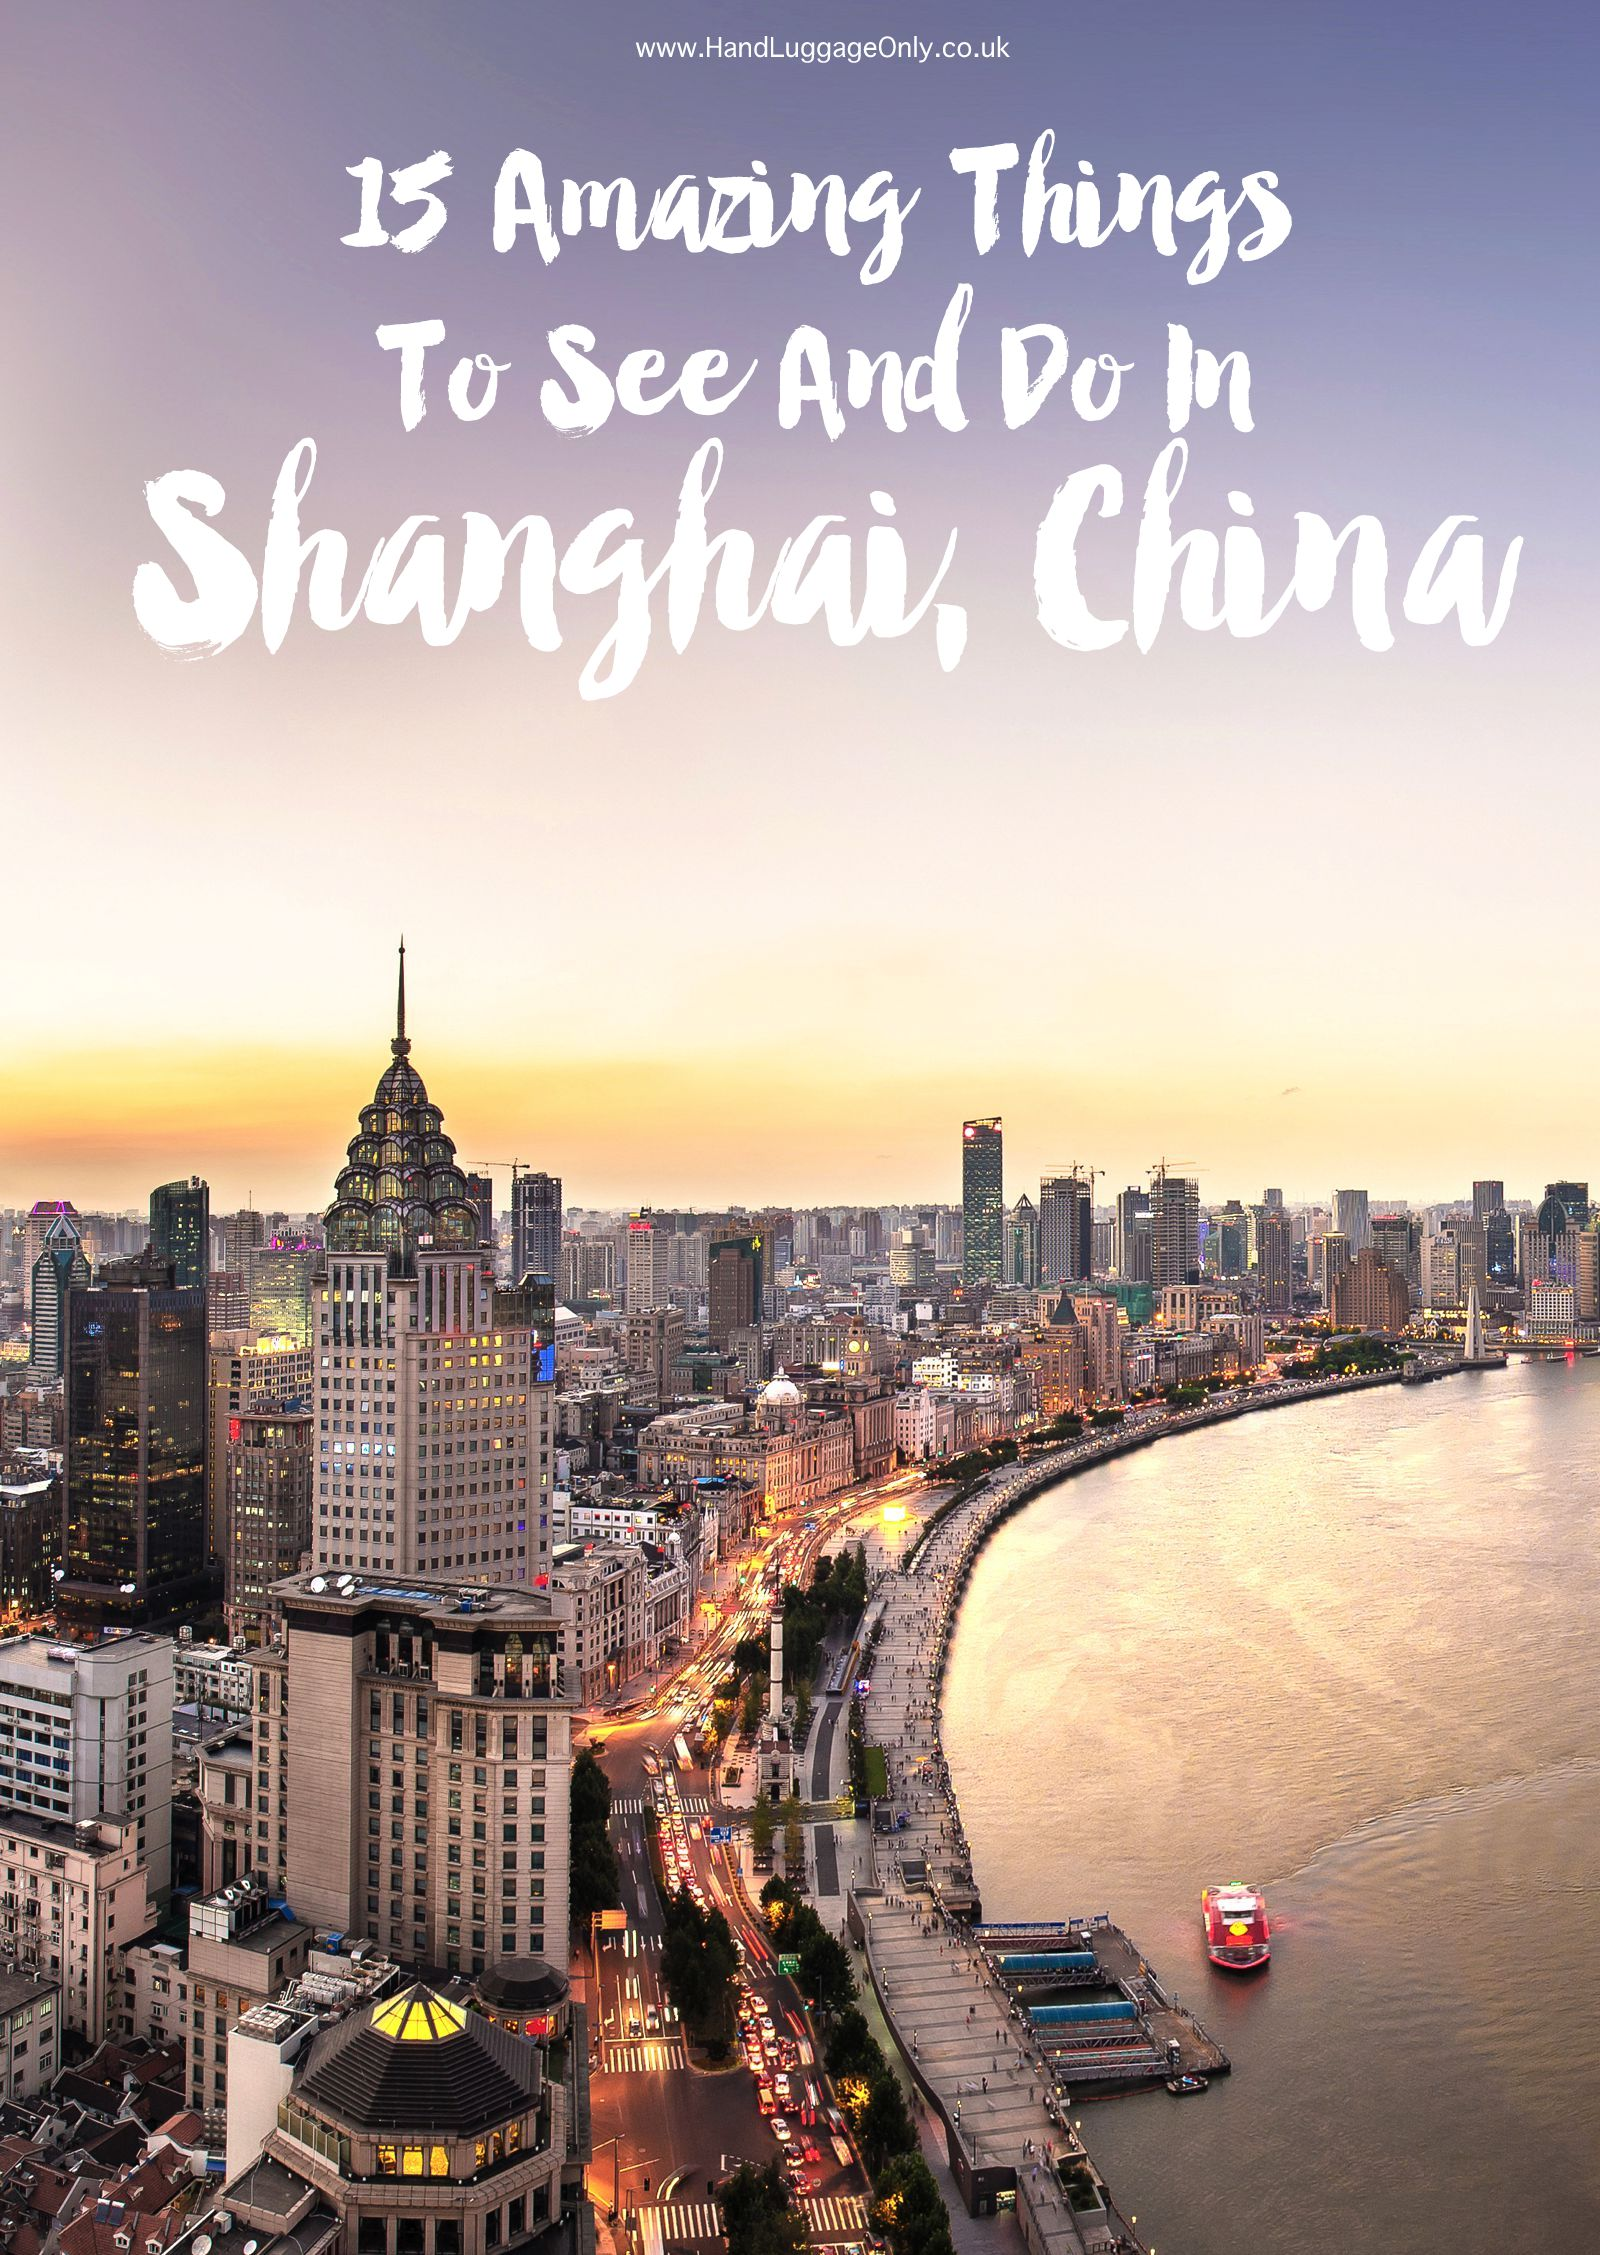 15 Amazing Things To See And Do In Shanghai, China (1)